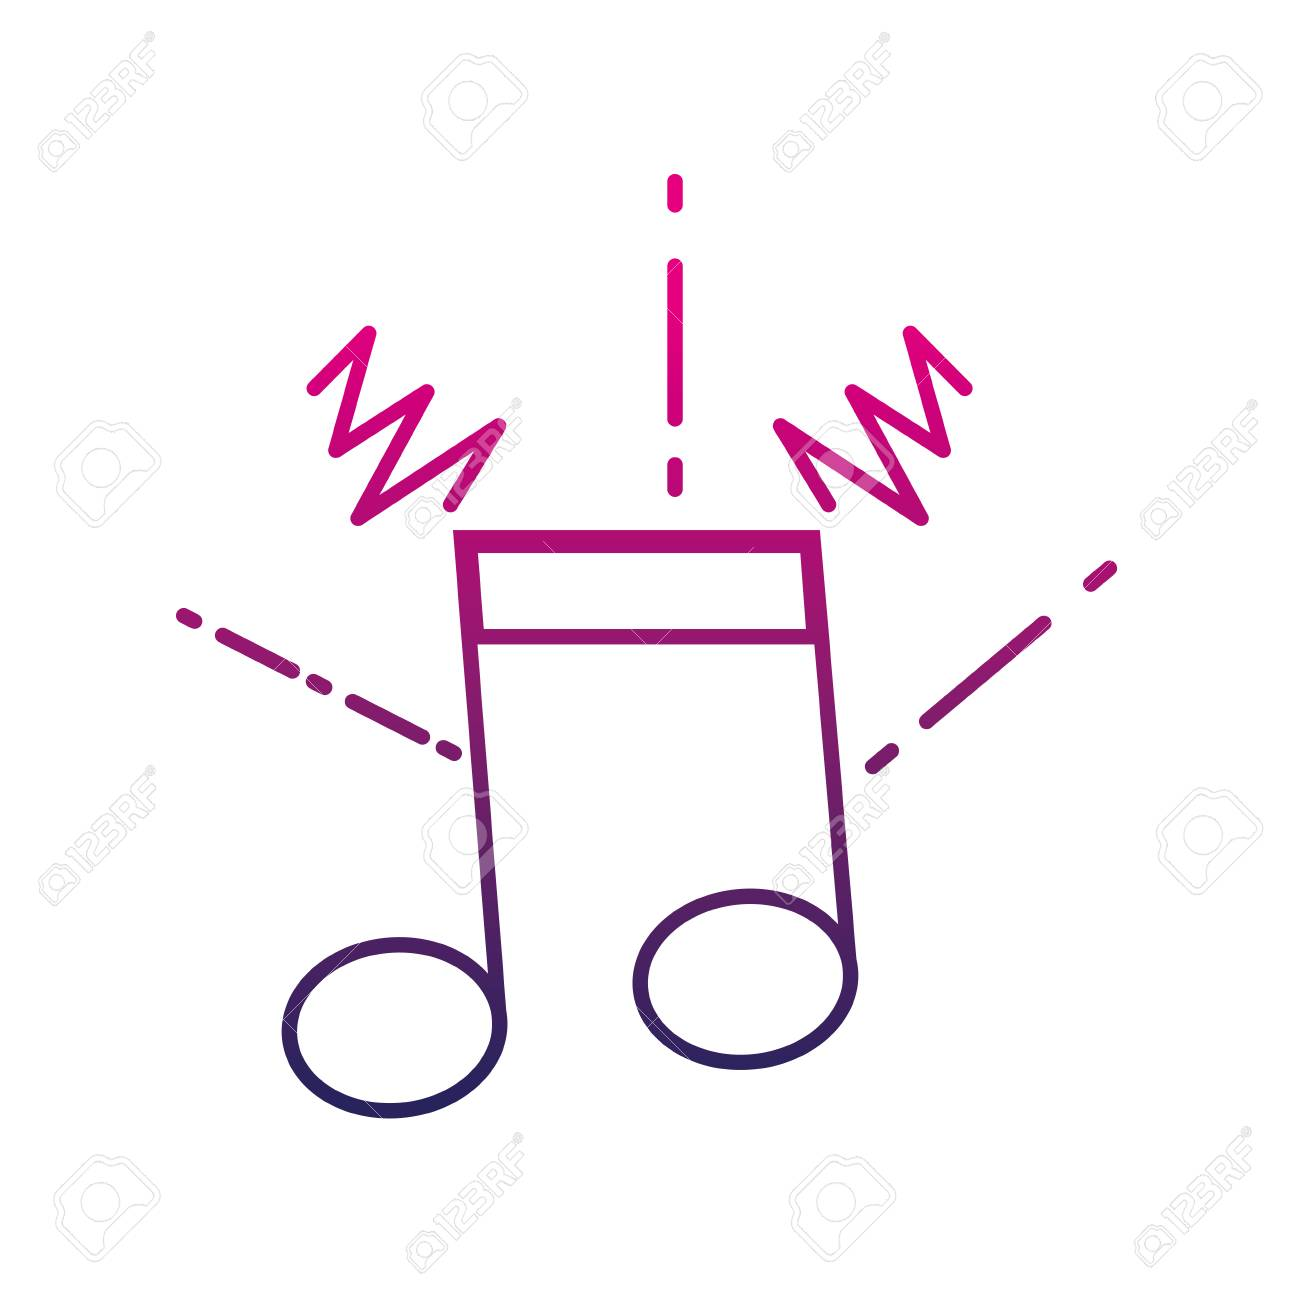 colored musical note outline vector illustration royalty free